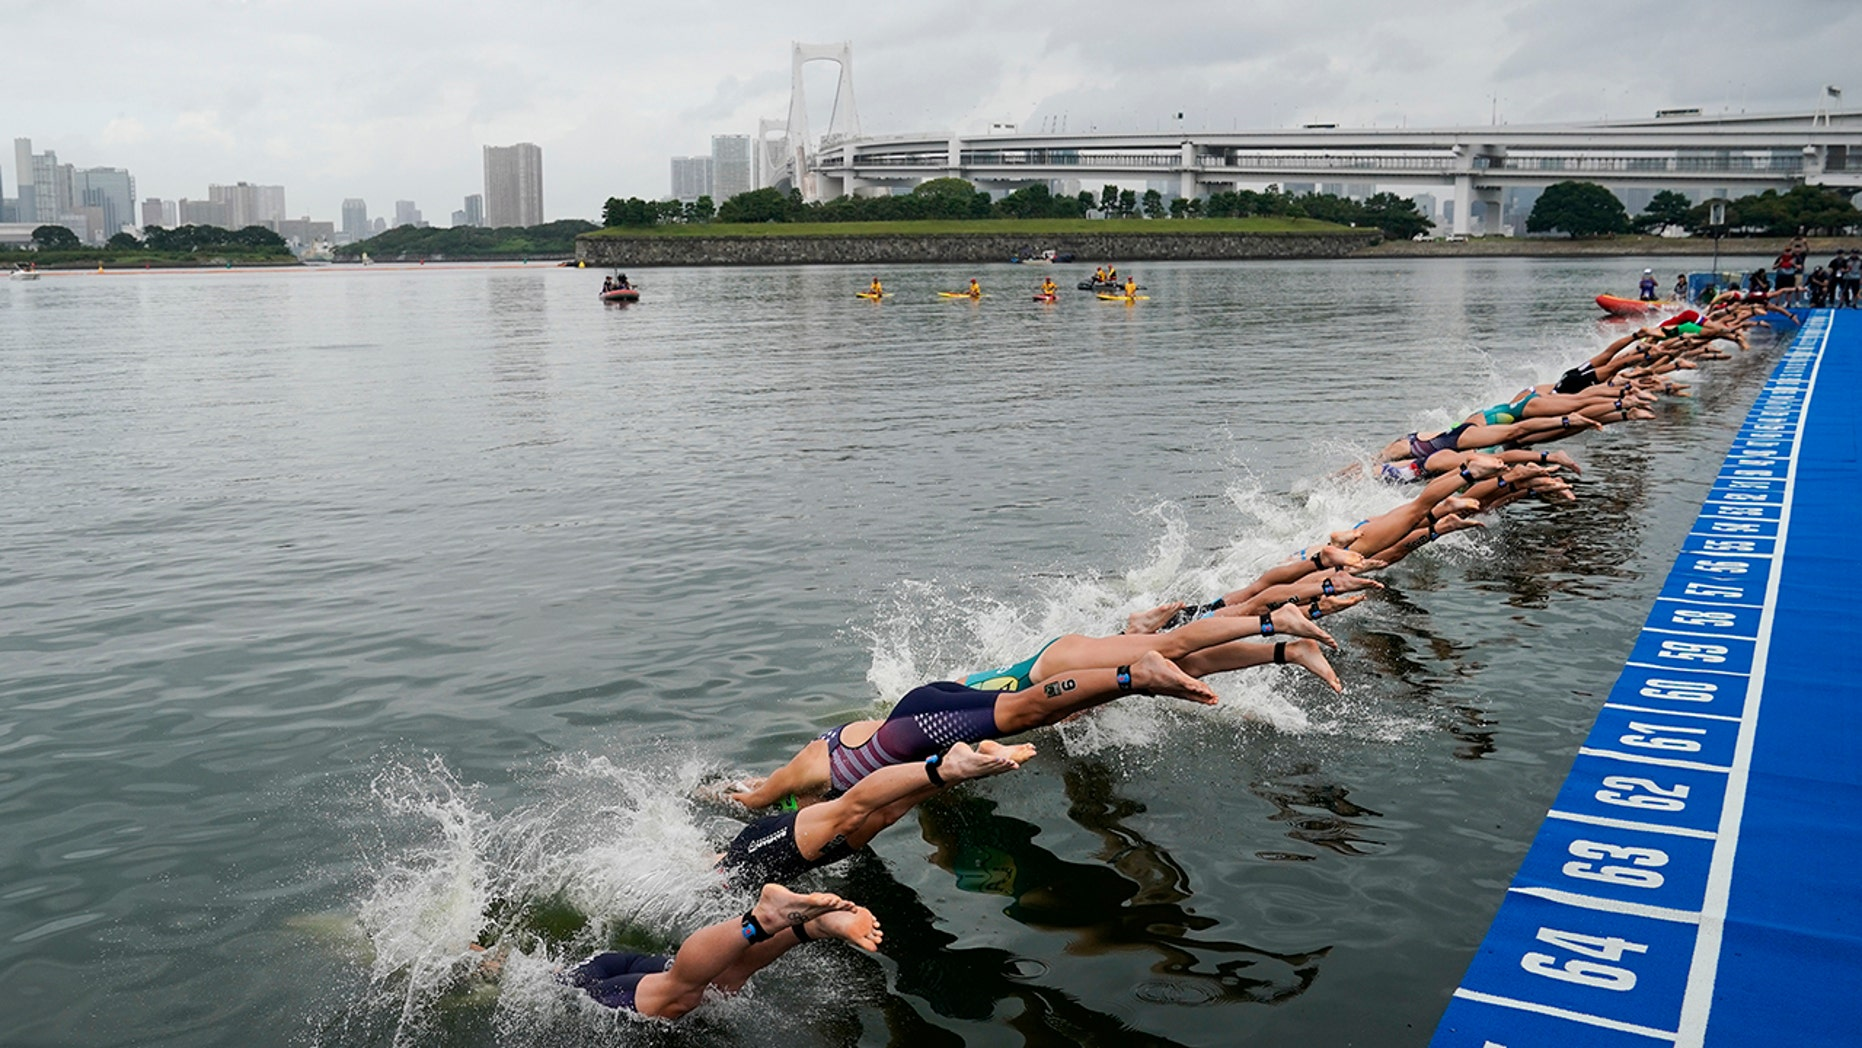 Westlake Legal Group Tokyo-Olympics3 Troubled waters: Open water swimming faces do-over of 2016 fox-news/world/world-regions/japan fox-news/sports/olympics fnc/sports fnc Associated Press article 72ce634a-a347-5d6a-9554-34a8bad7ebae